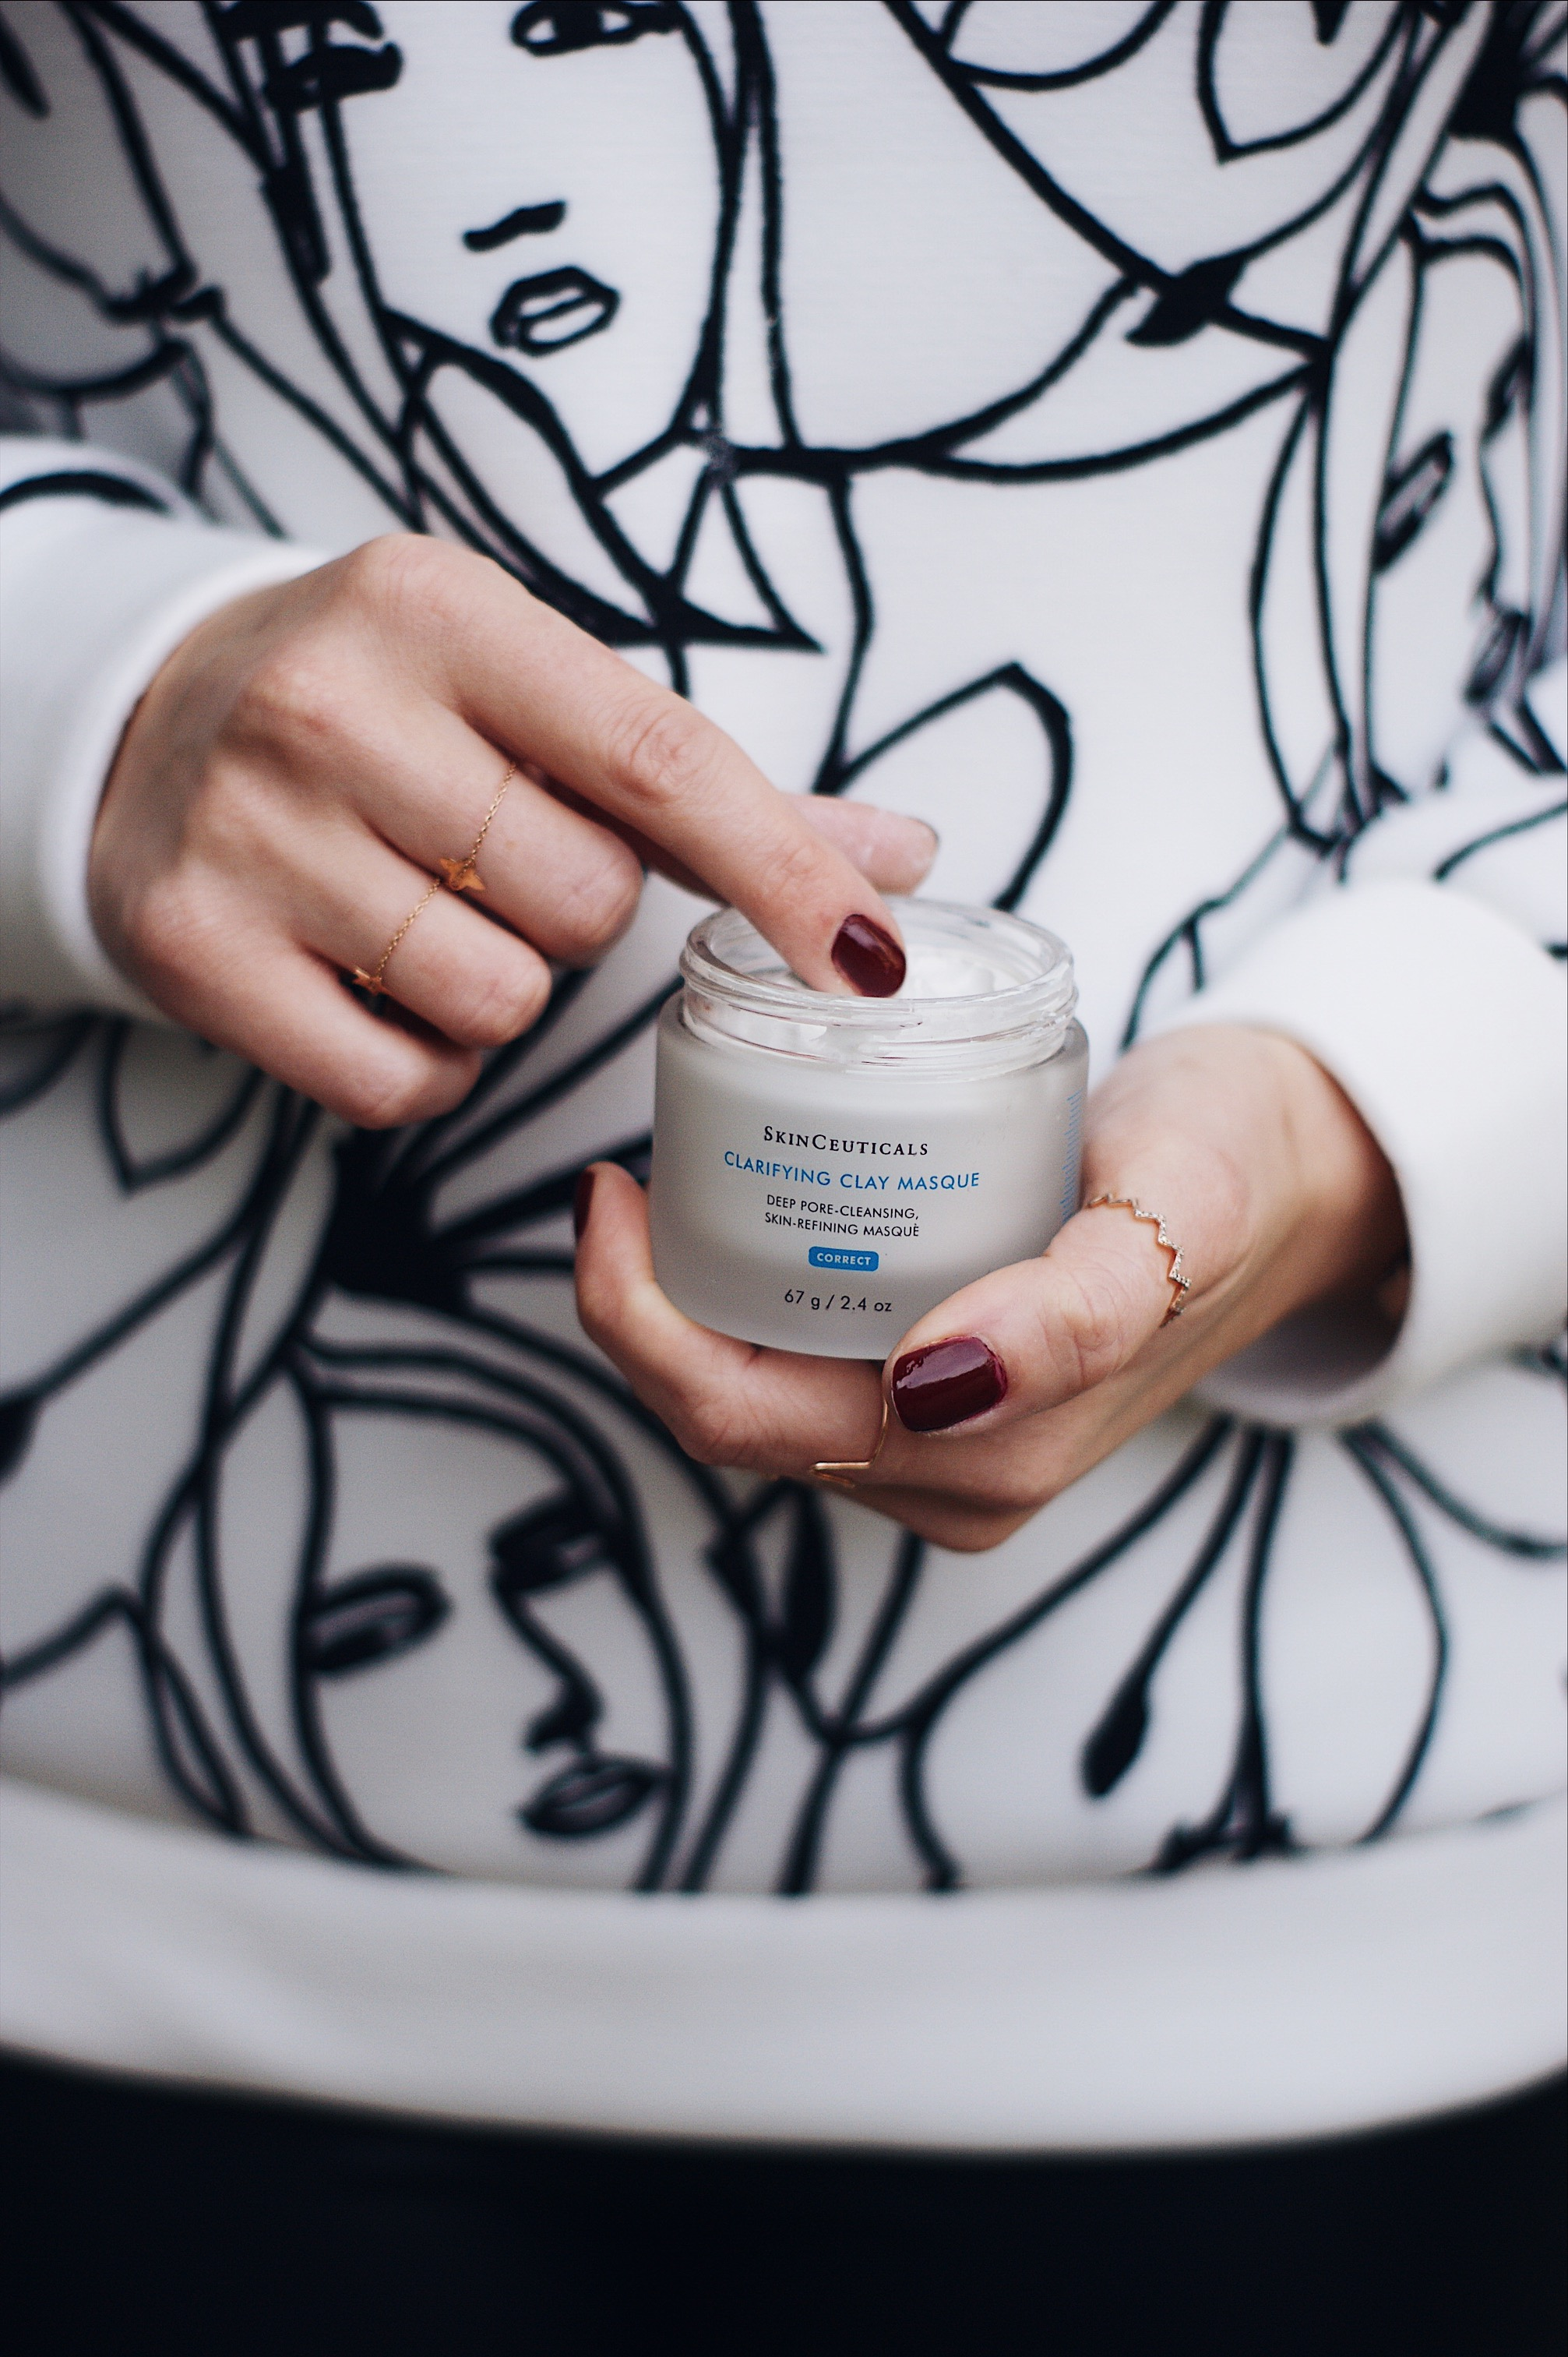 Skin Ceuticals Clarifying Clay Mask